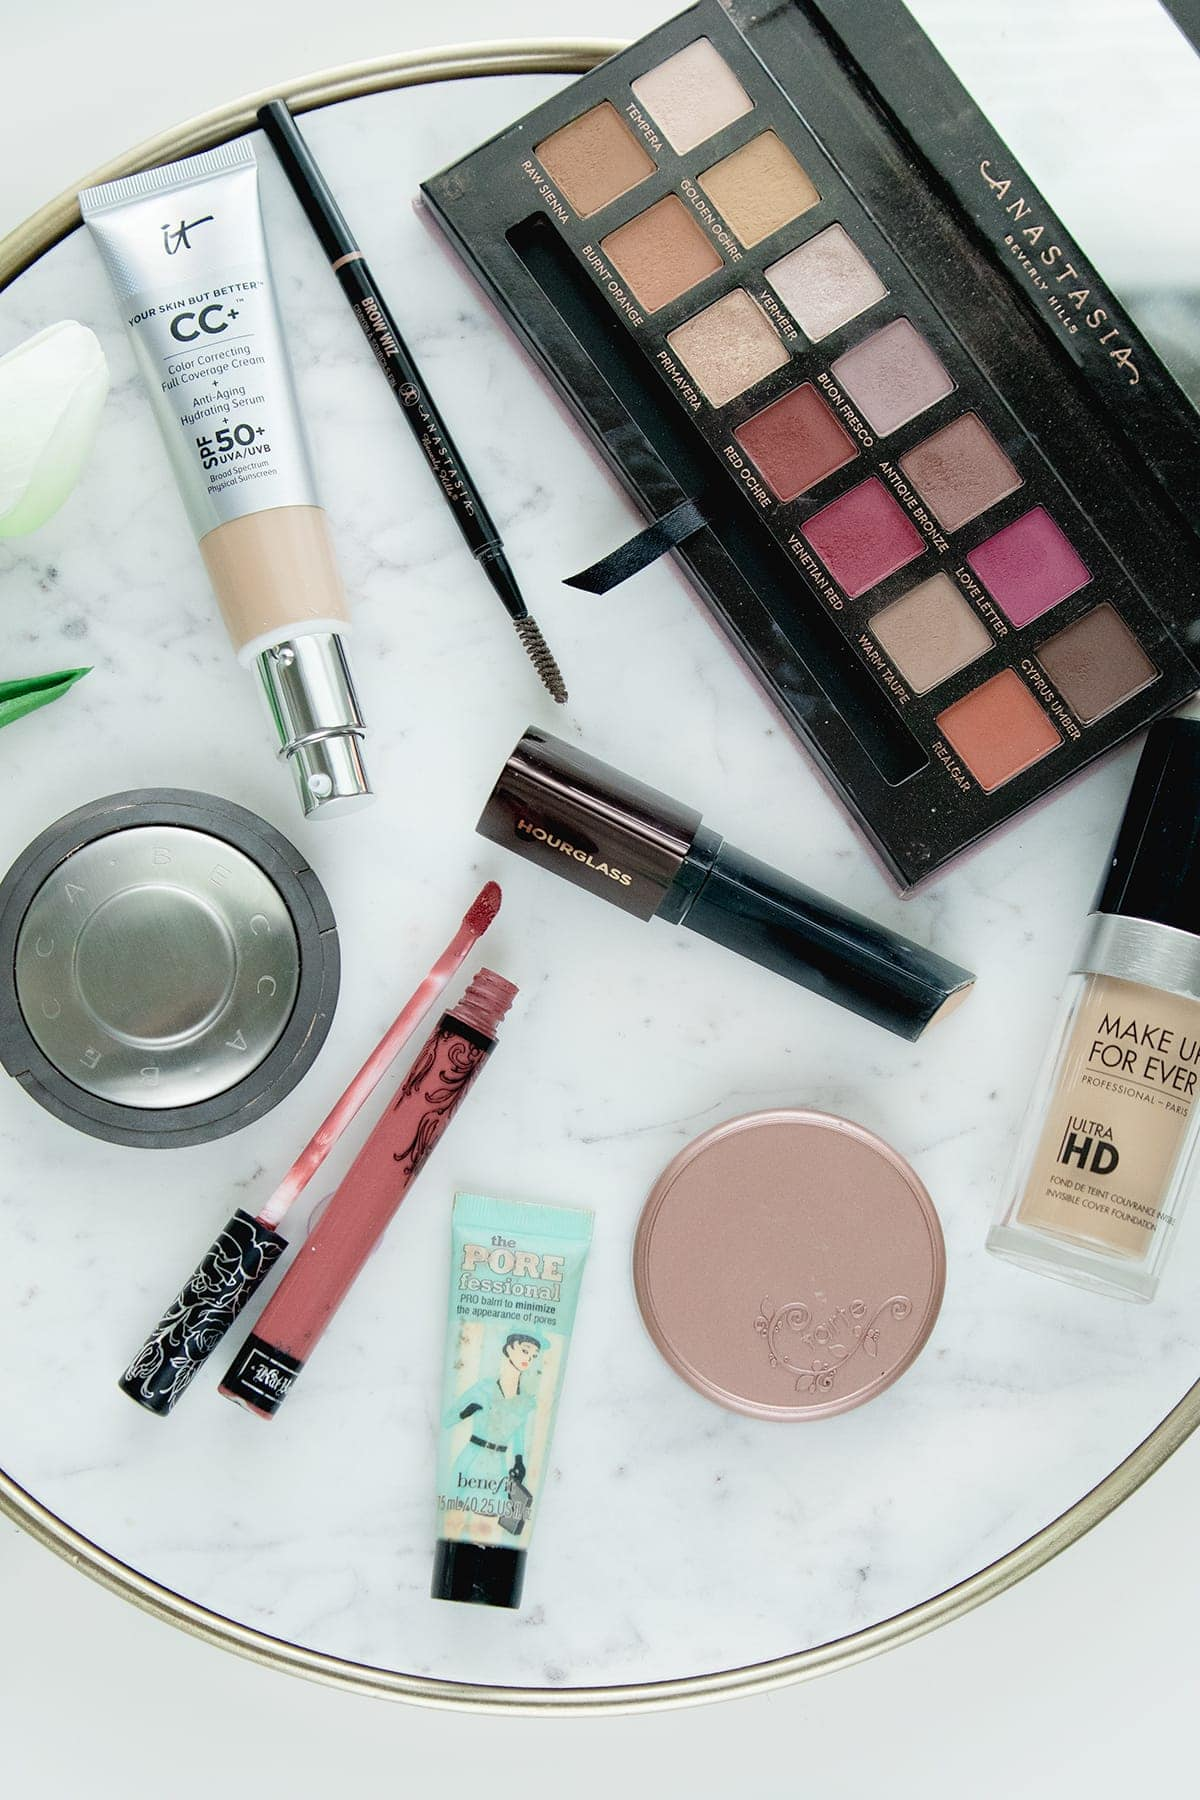 Beauty blogger Meg O. On The Go shares ten of the best Sephora beauty products! They are worth every penny. Read More!